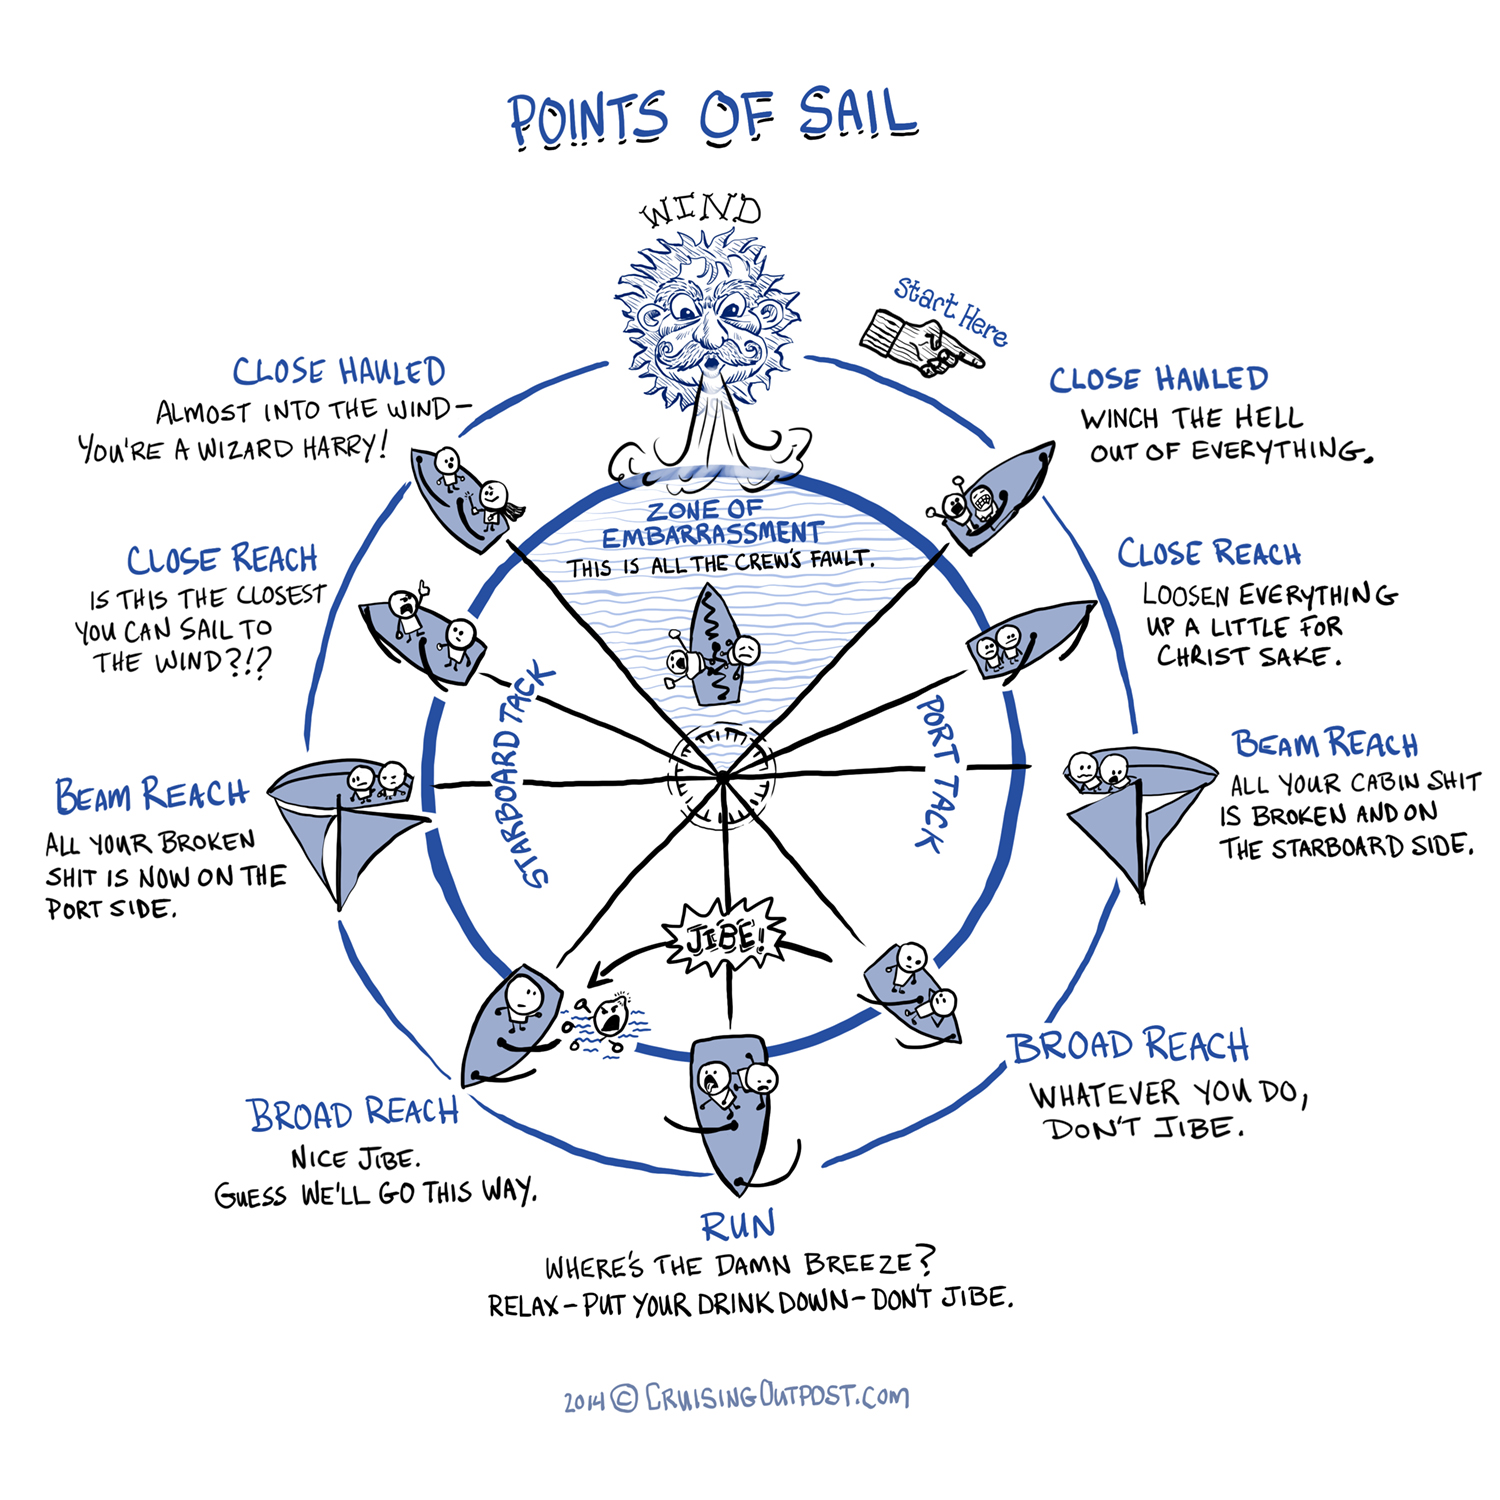 points-of-sail